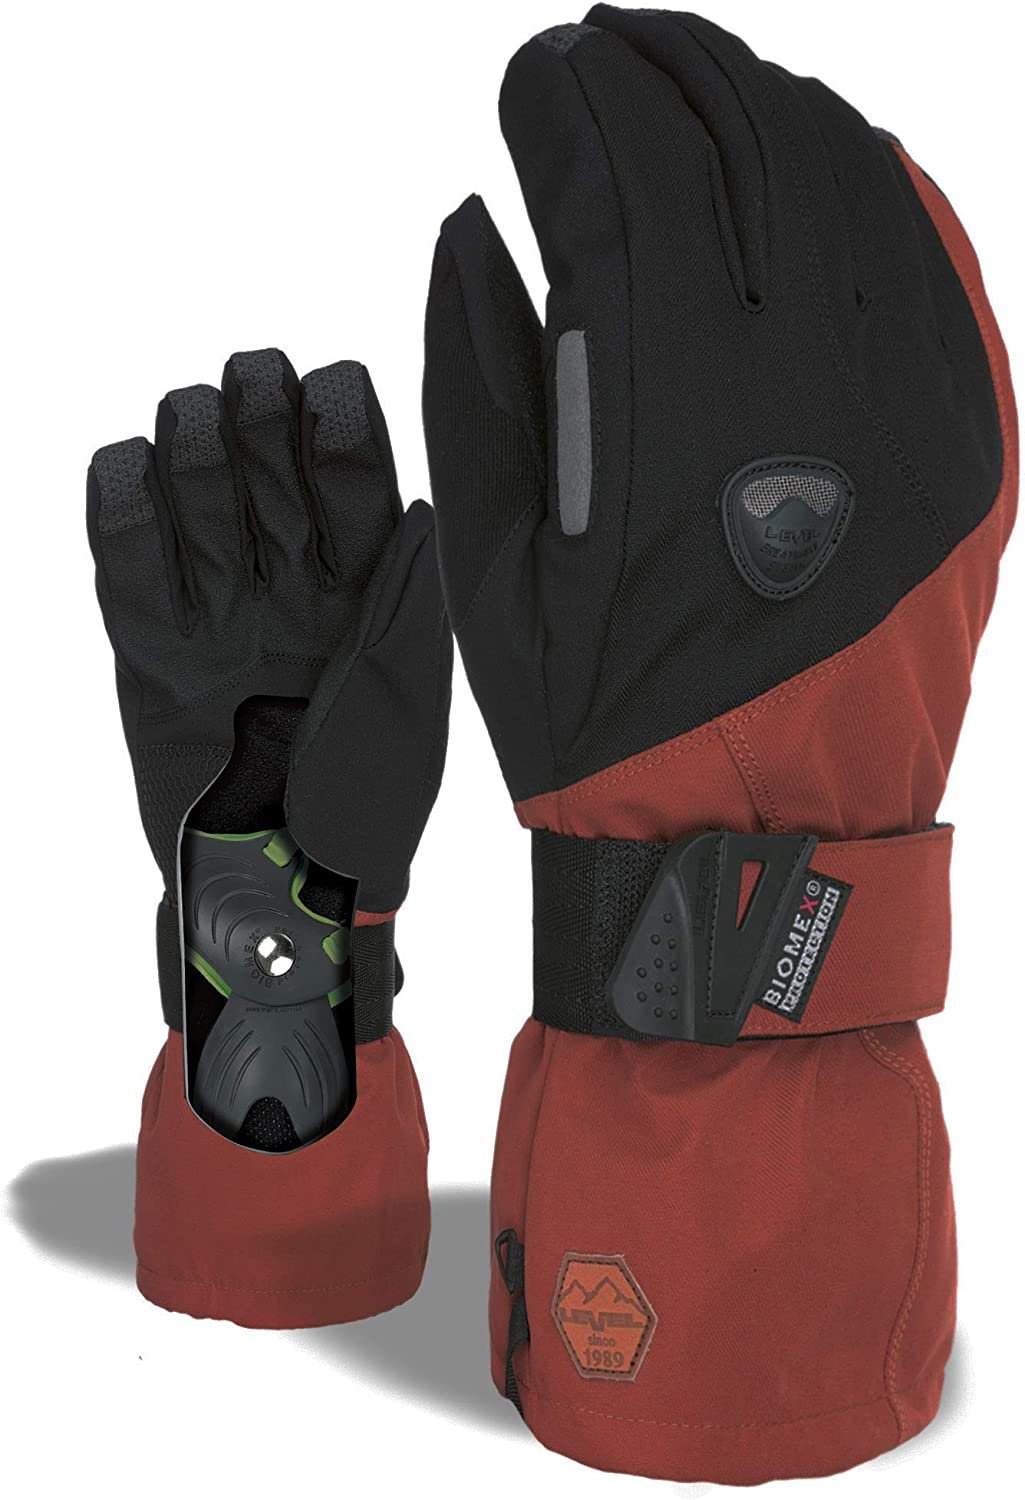 LEVEL Fly Snowboard Gloves with Wrist Guards, Proven BioMex Design, Kevlar Palms, Removable Liner (Scottish Brown, Medium (8.0in))